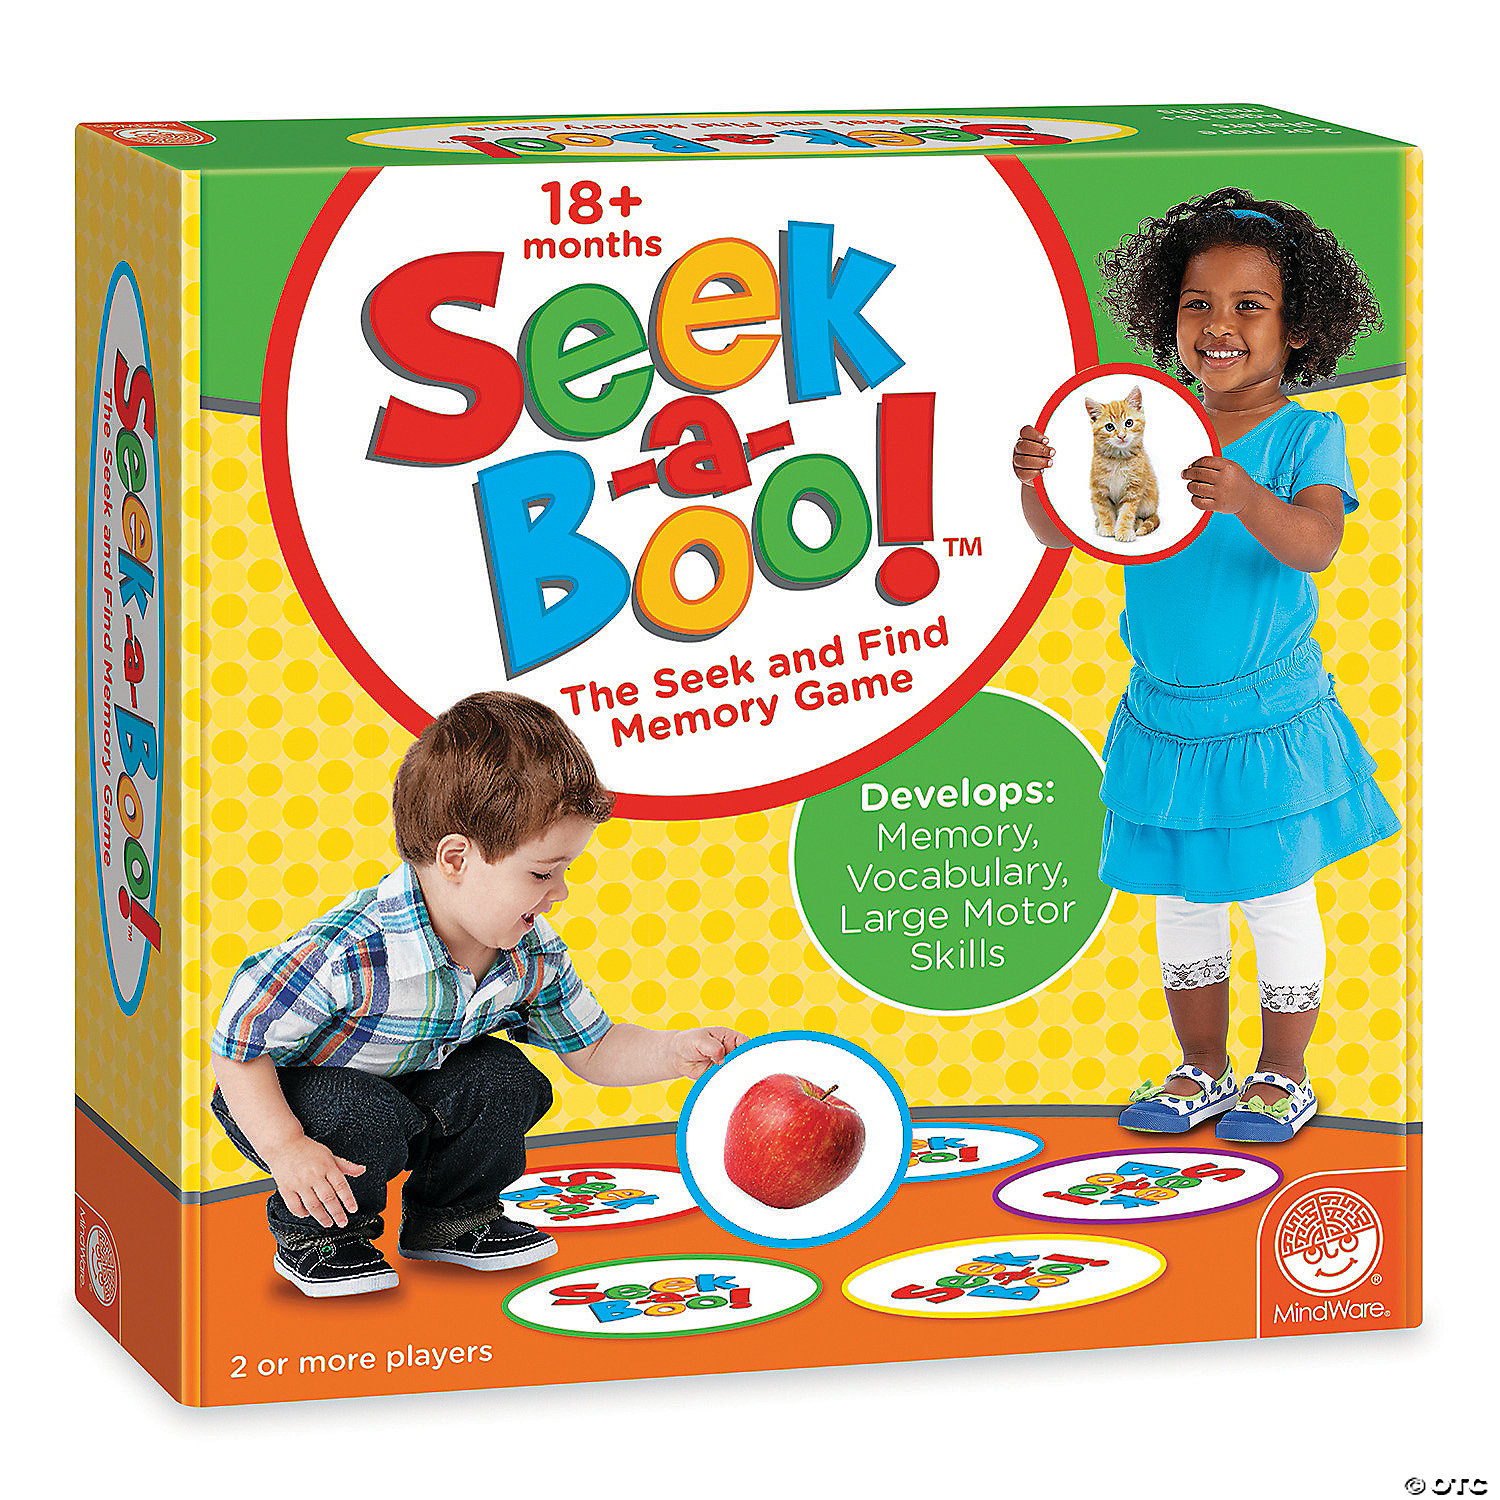 Educational Toys & Learning Games for 3 Year Old Boys & Girls